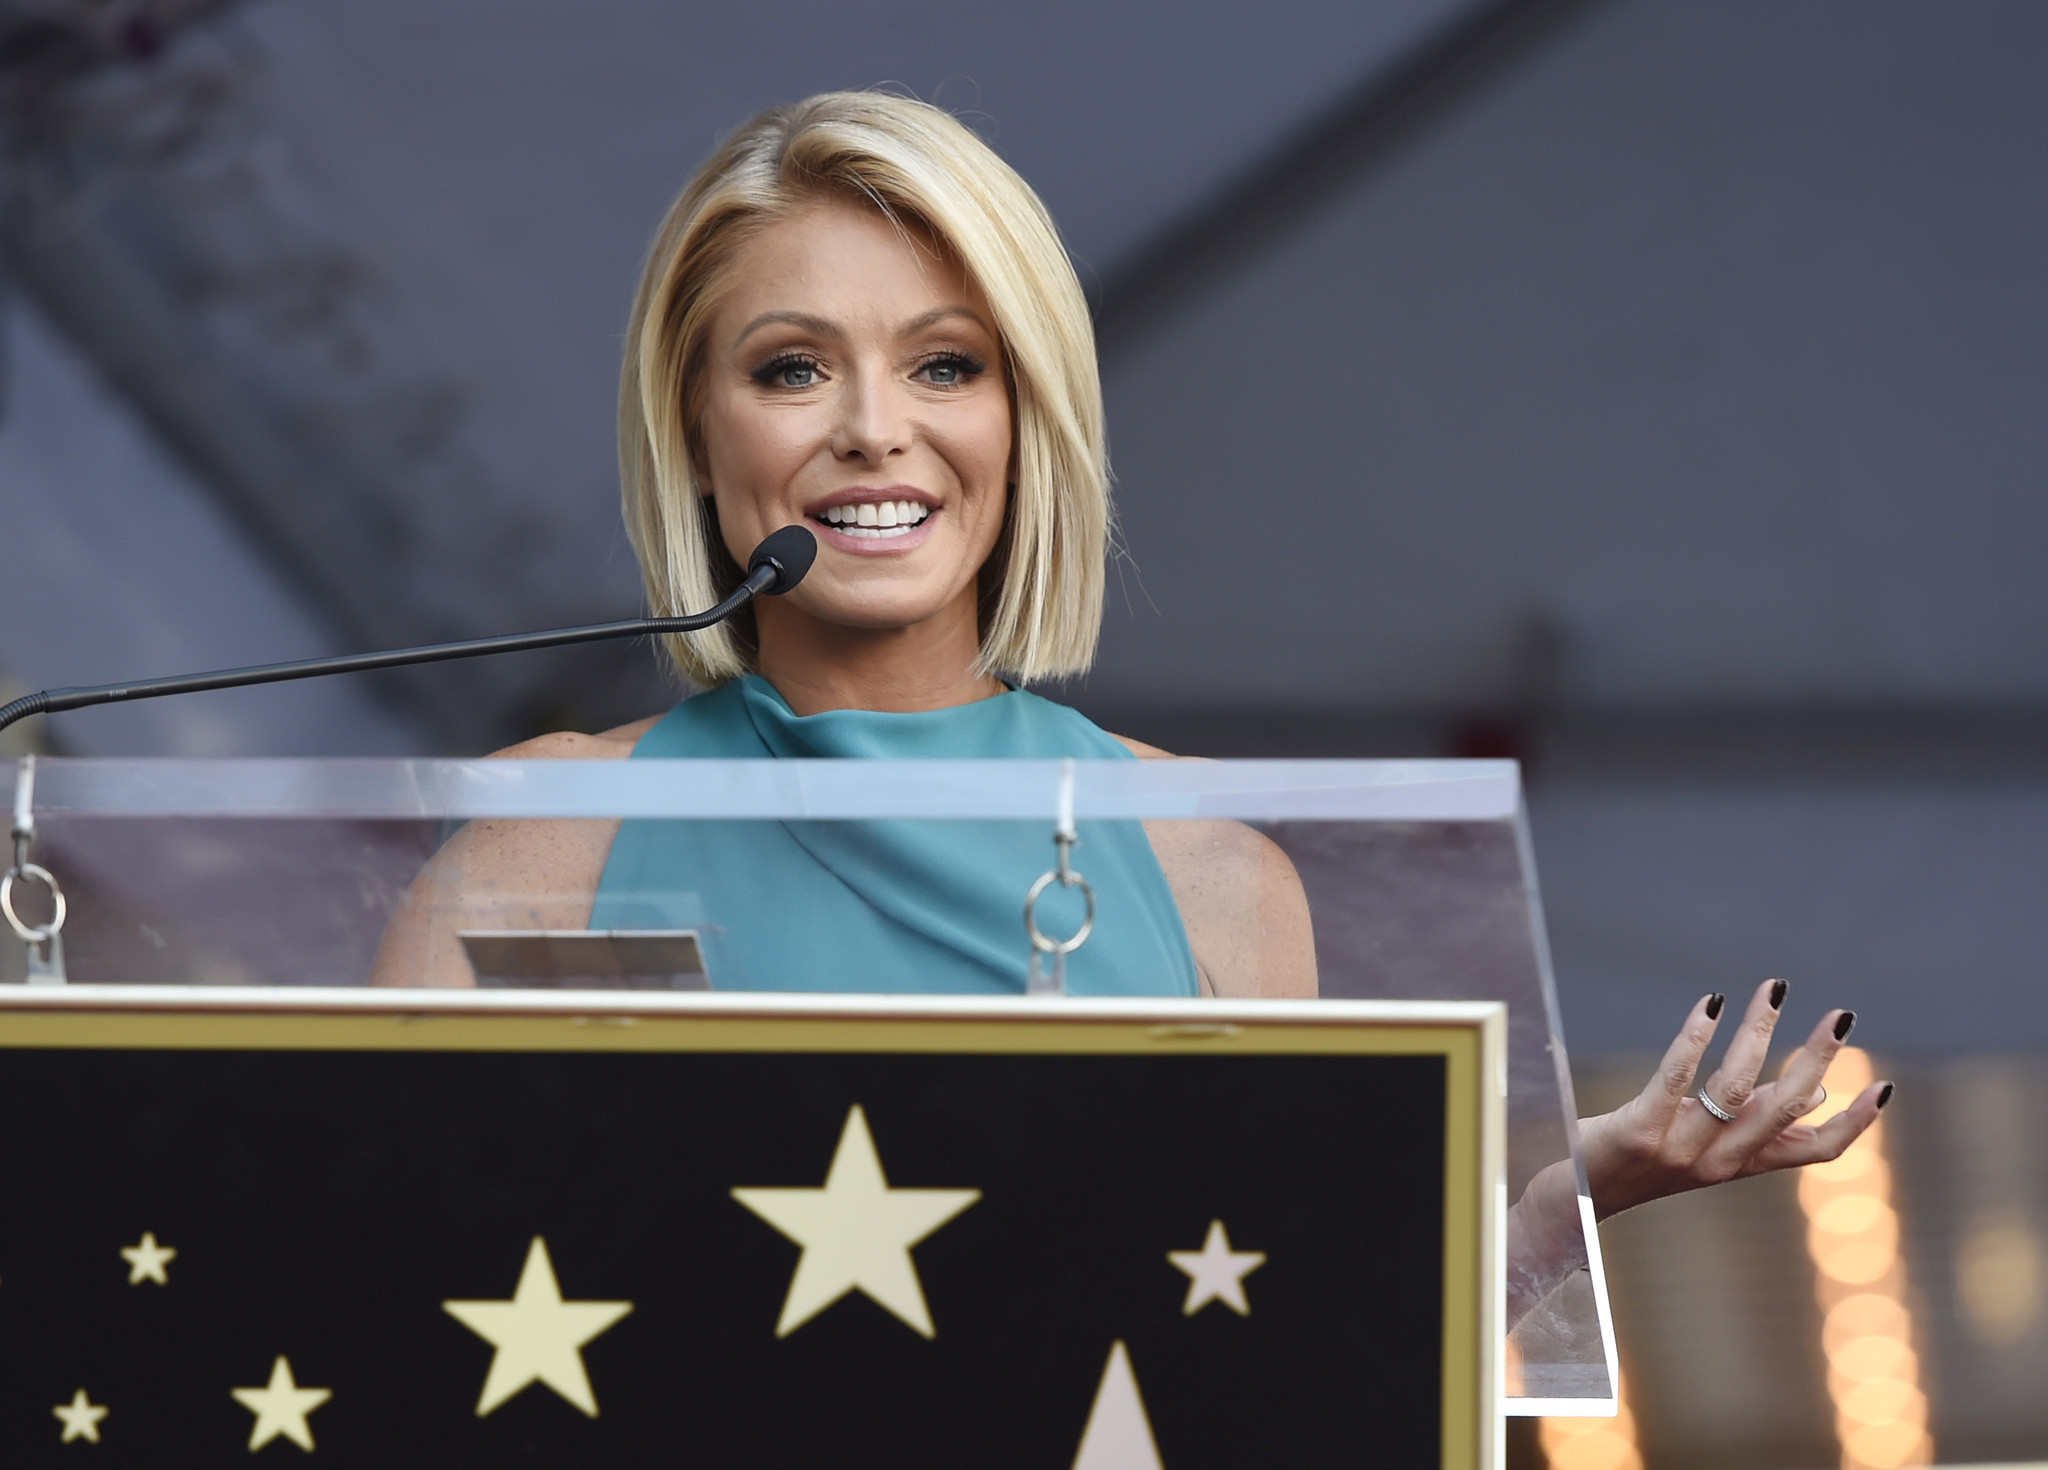 Kelly Ripa has a very clear message before Michael Strahan's last day on 'Live!' - Chicago Tribune